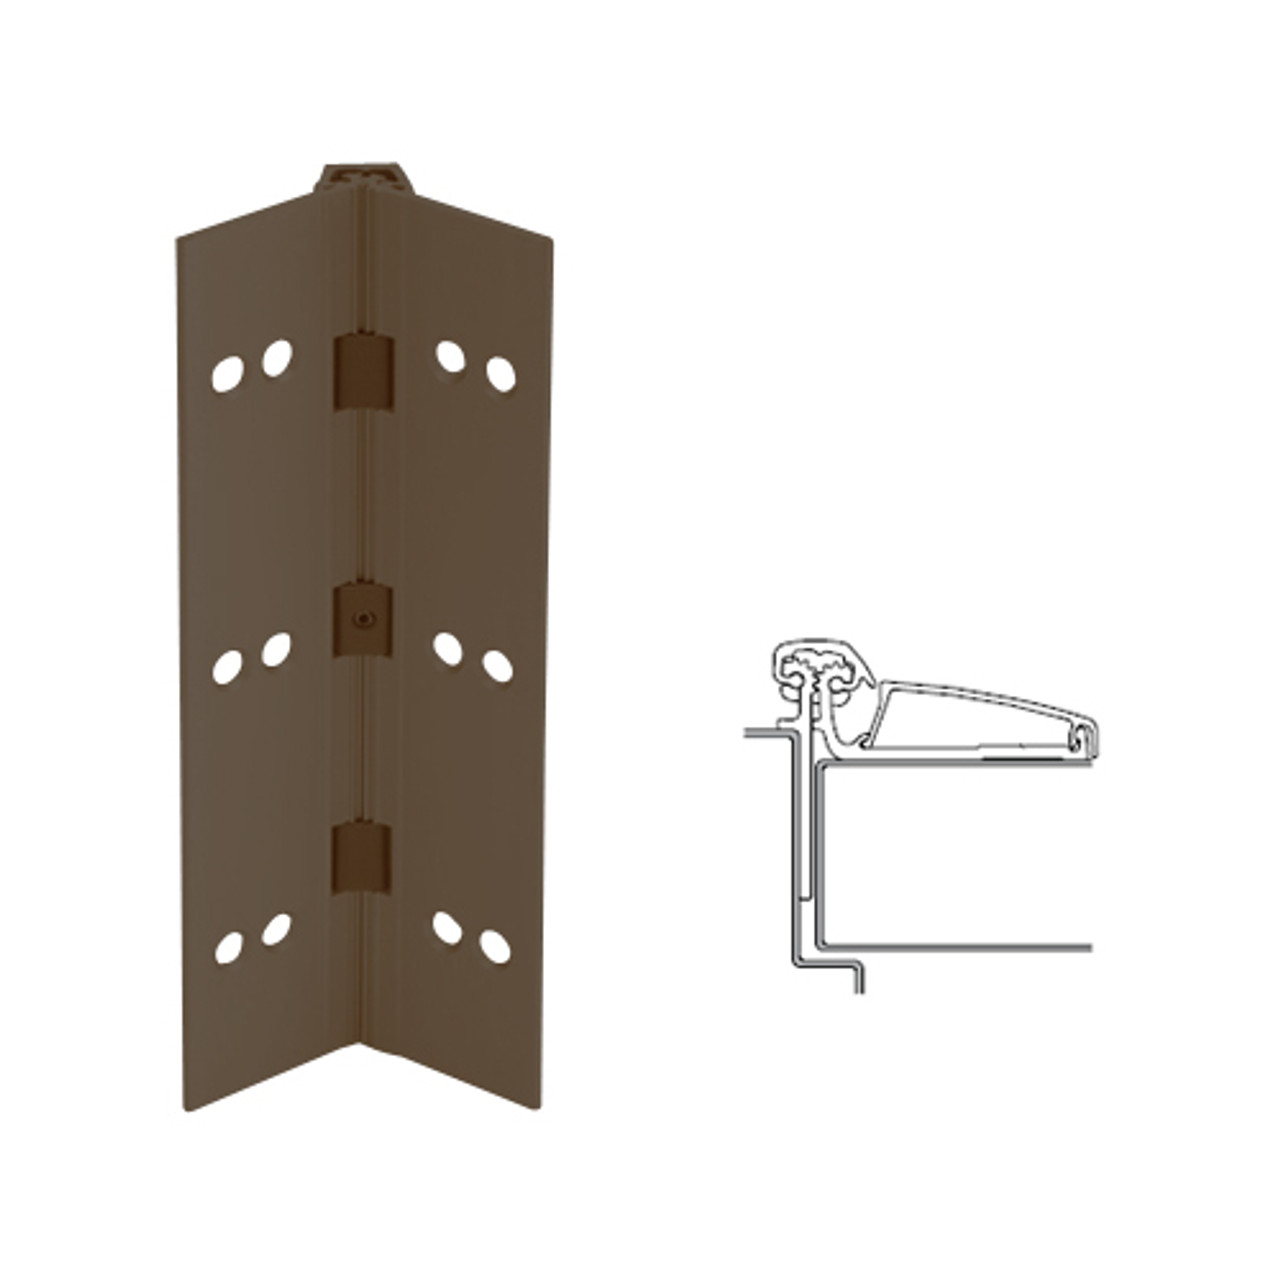 045XY-313AN-95-TEKWD IVES Adjustable Half Surface Continuous Geared Hinges with Wood Screws in Dark Bronze Anodized